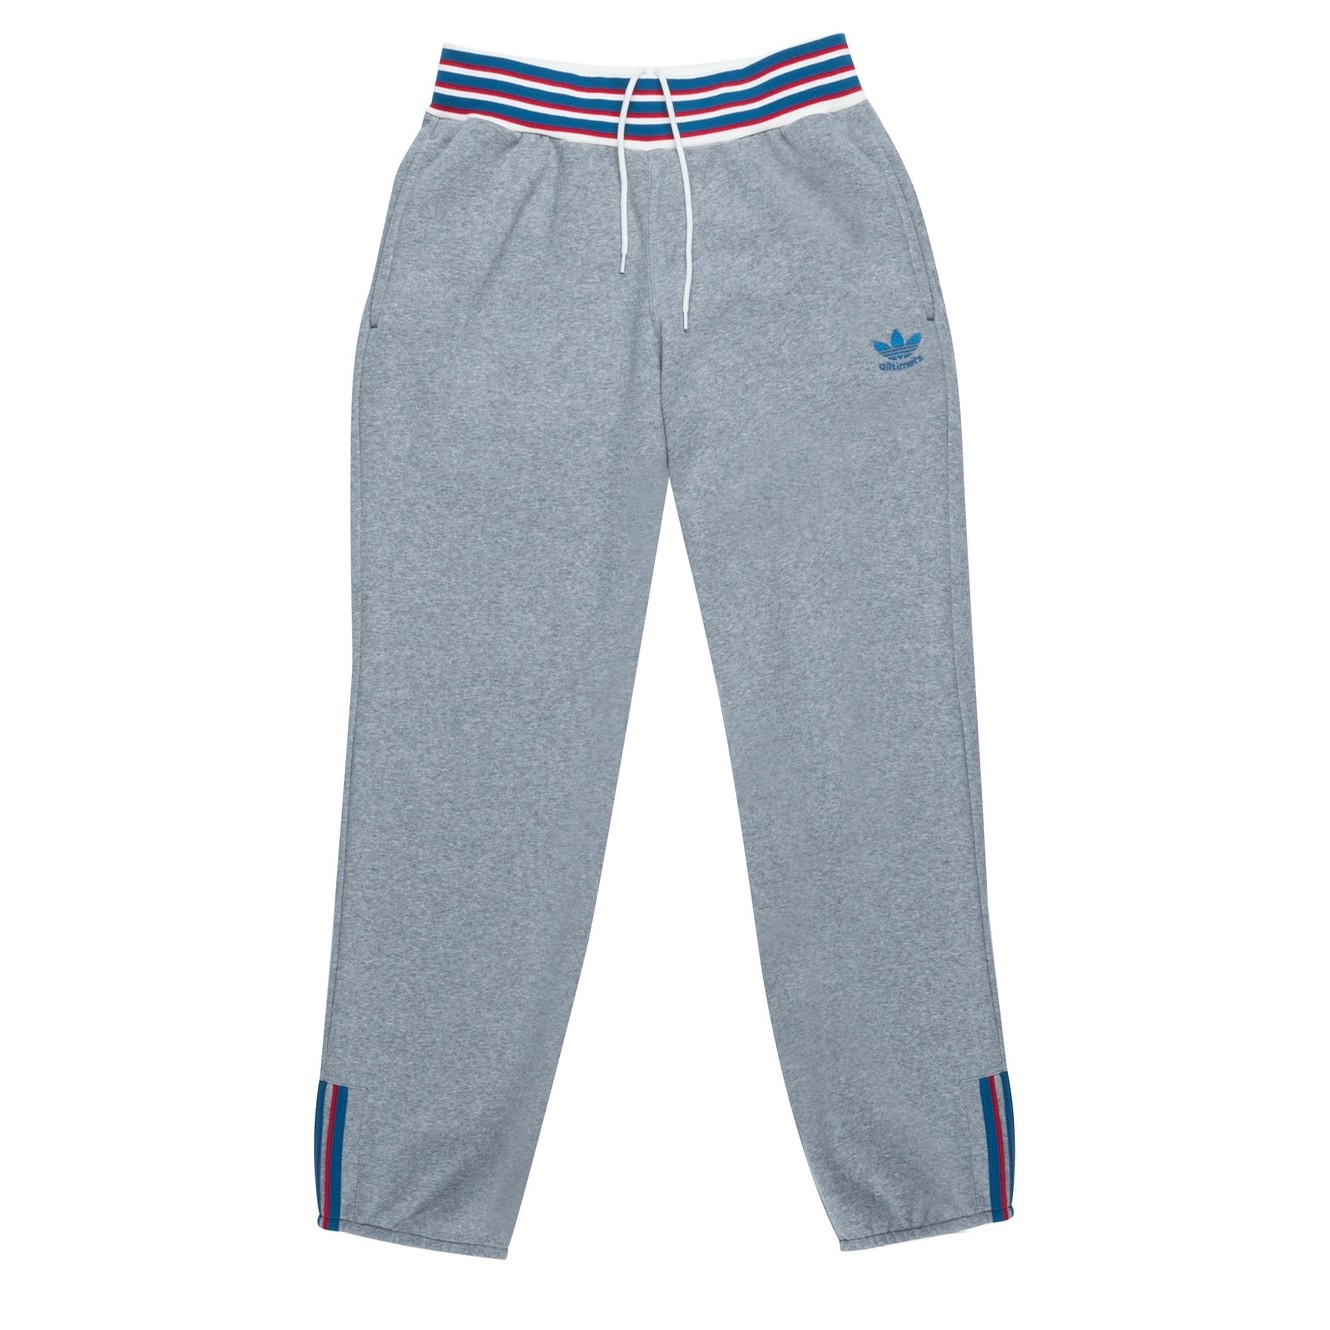 Adidas X Alltimers Pants